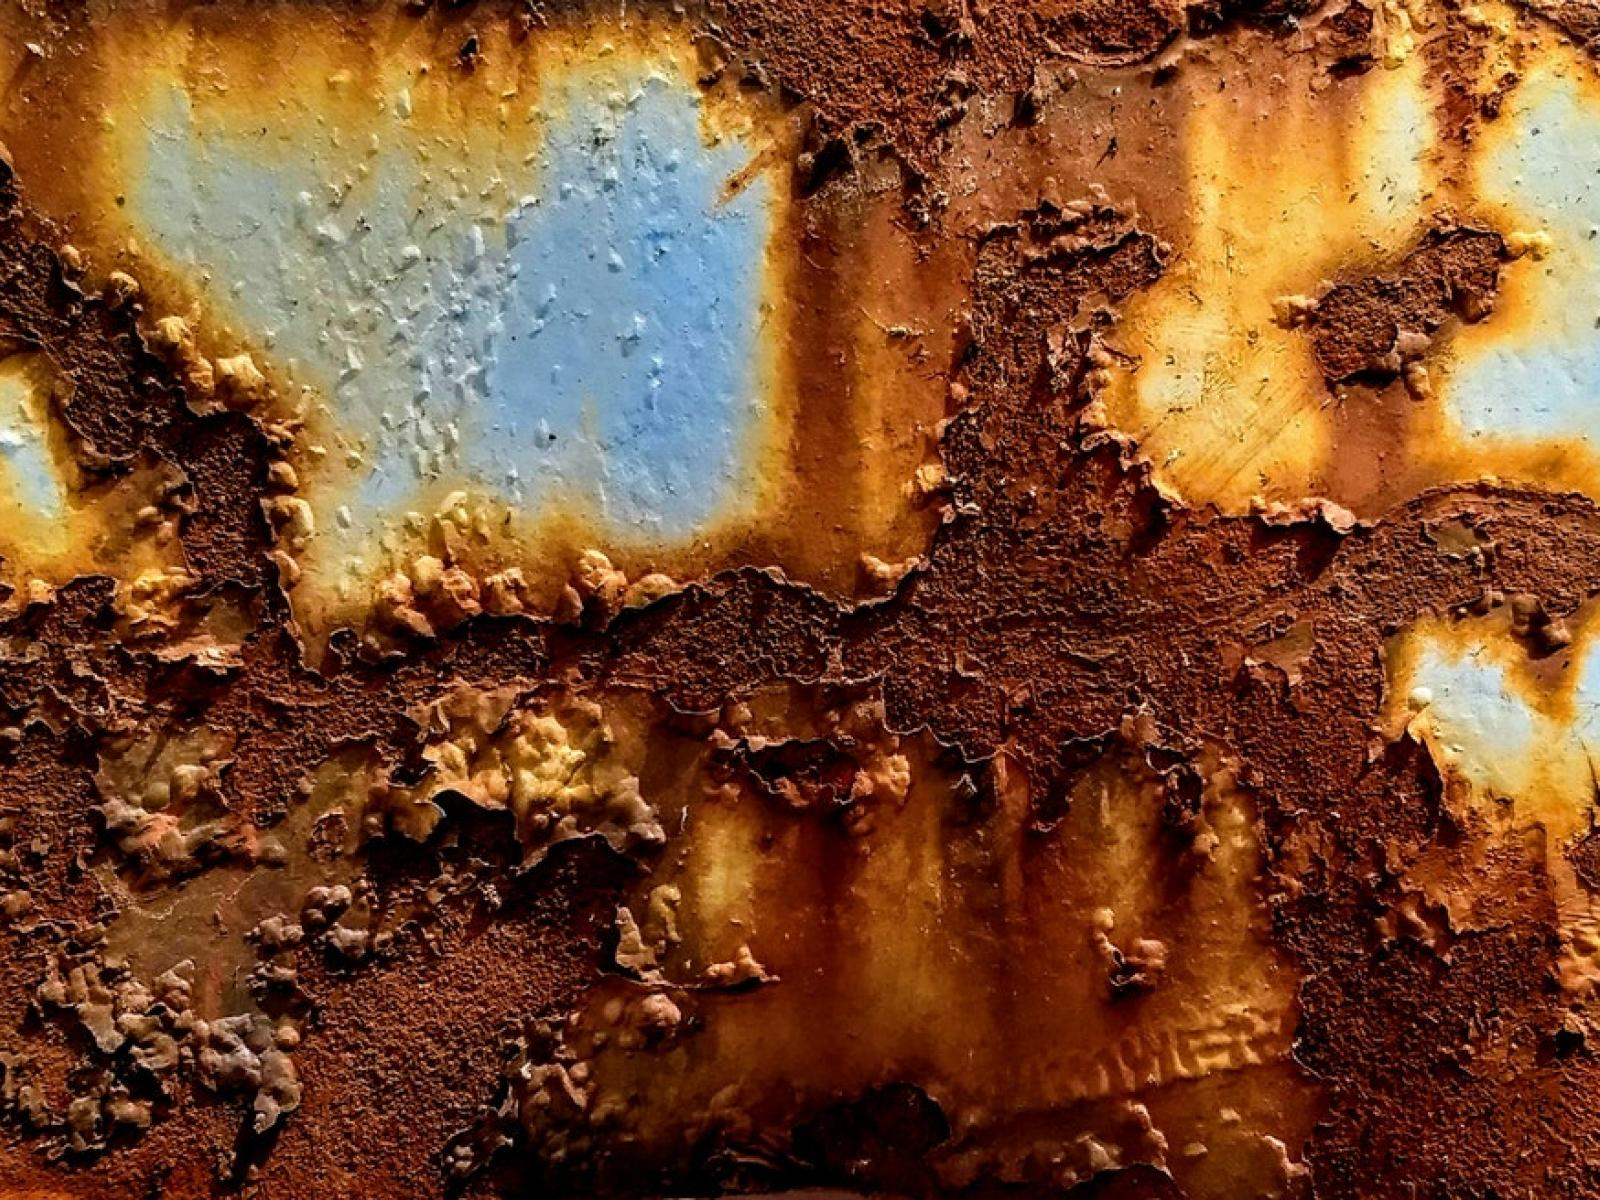 PNNL researchers have been able to observe in unprecedented detail how rust happens. Credit: Zsolt Palantinus on Unsplash